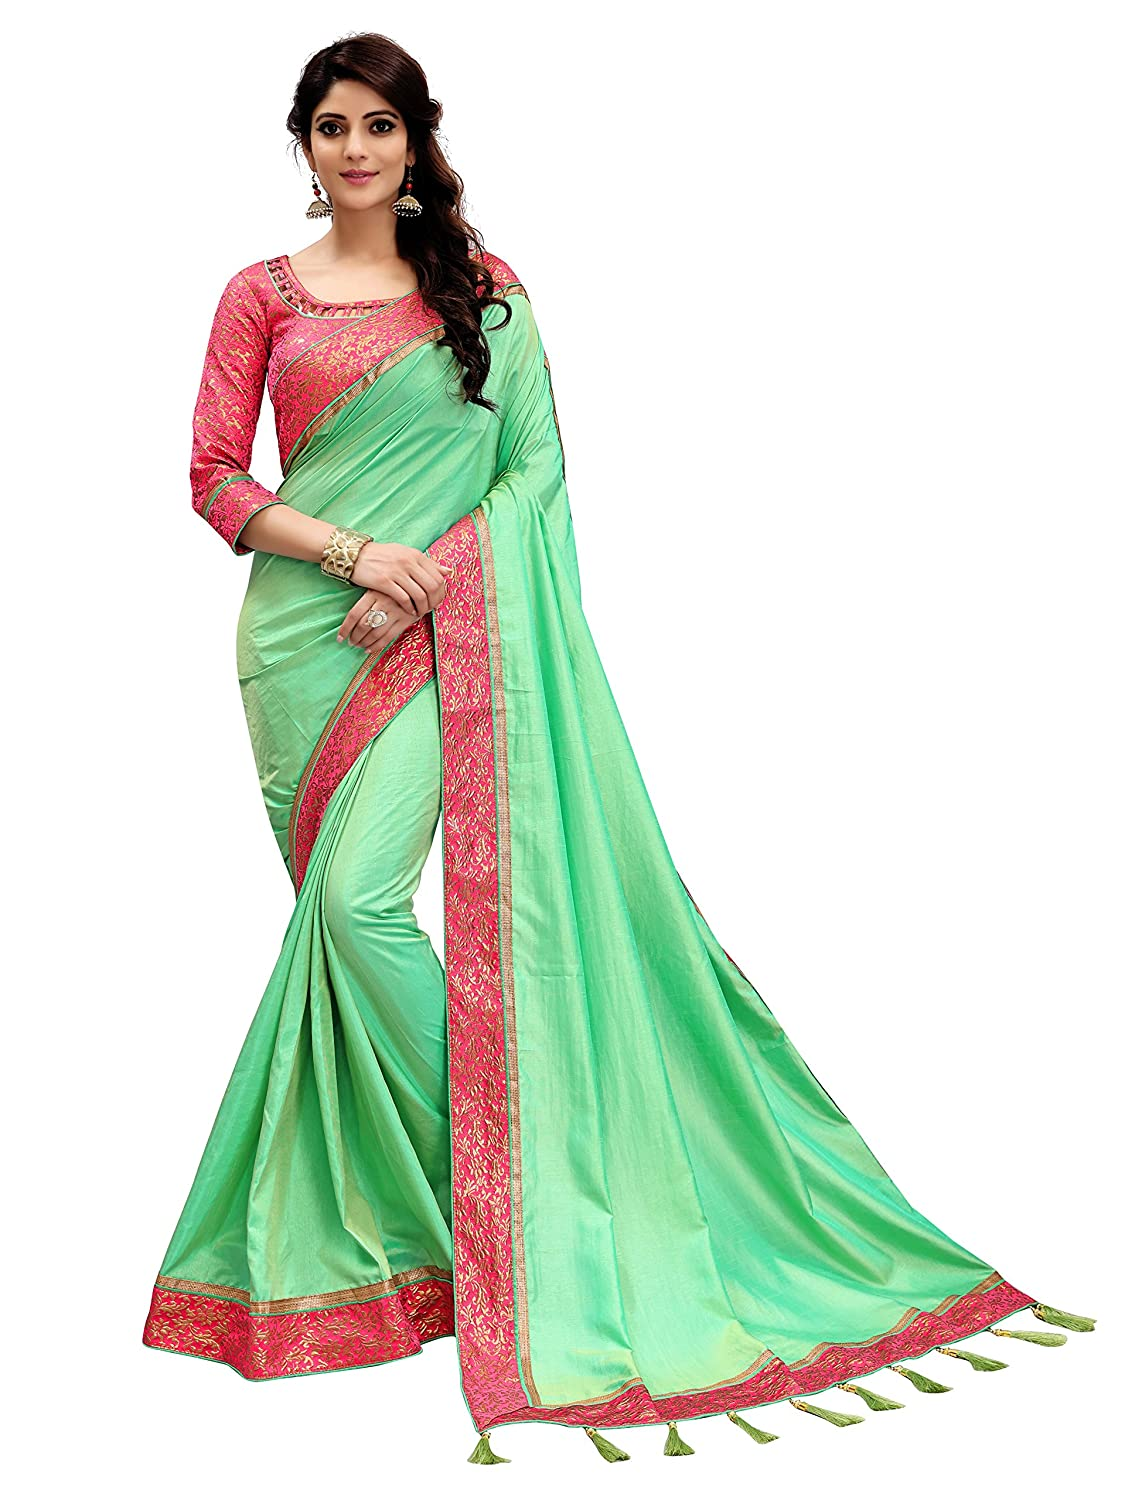 60fd056e78644 Lilots Silk Saree With Blouse Piece(466-30692 Light Green Free Size)   Amazon.in  Clothing   Accessories